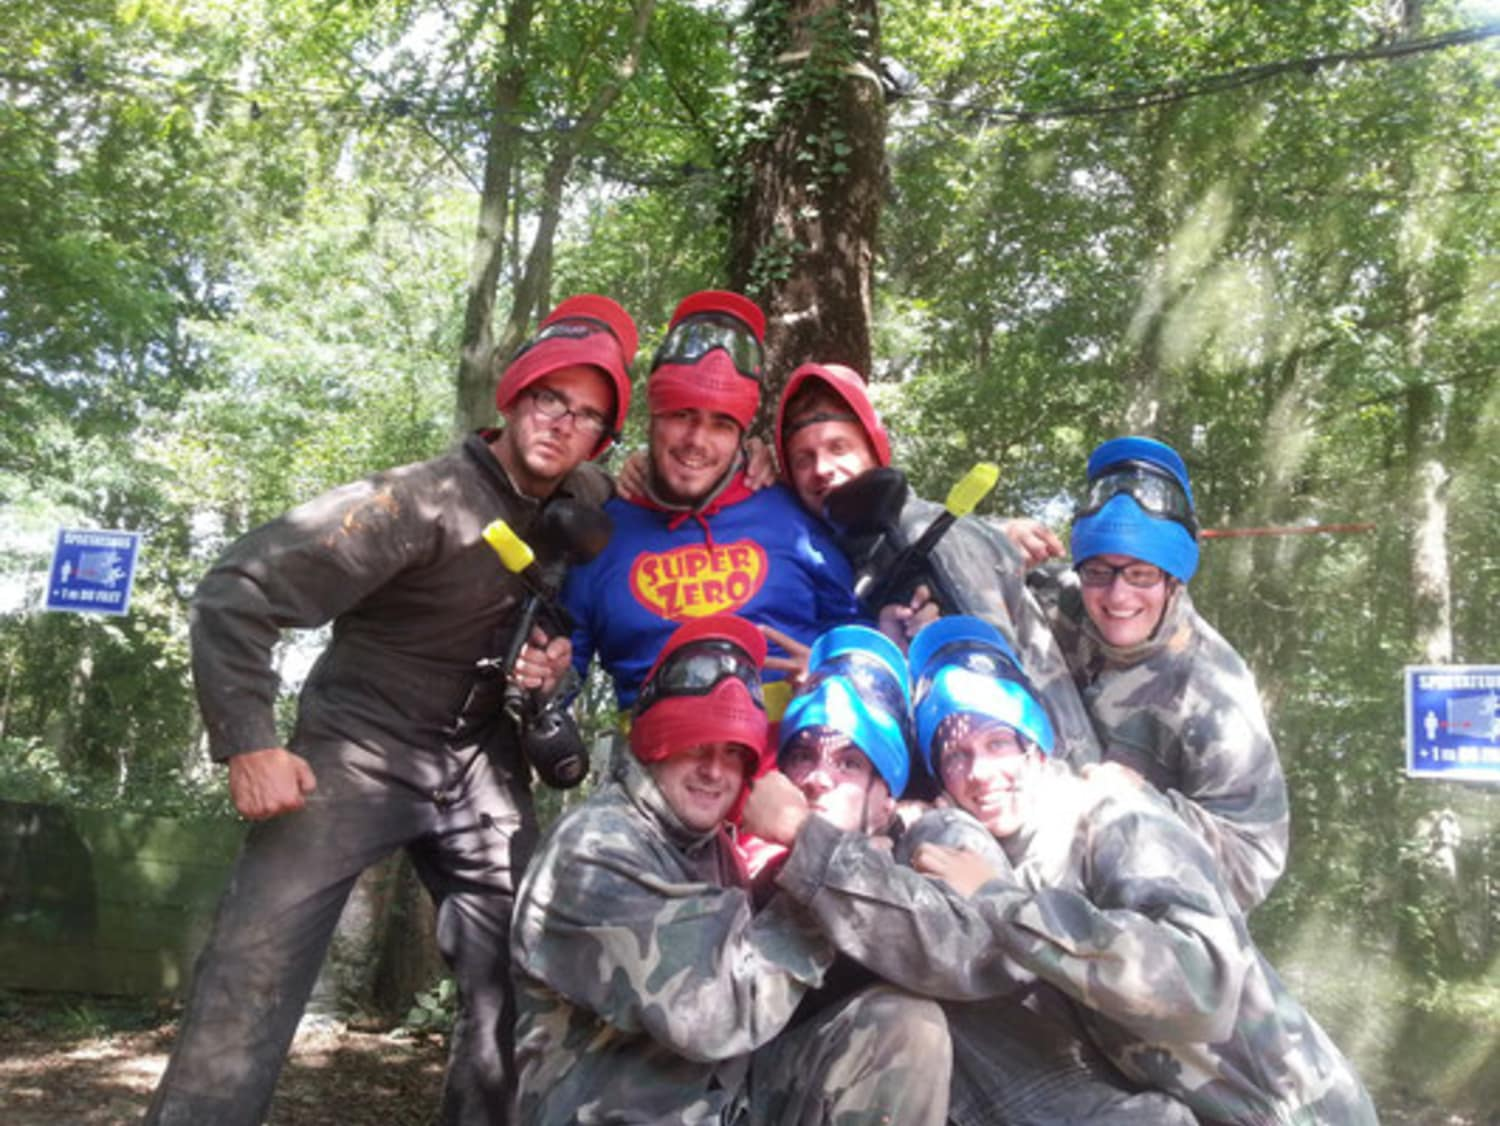 Paintball Mania - Grandchamps-des-Fontaines